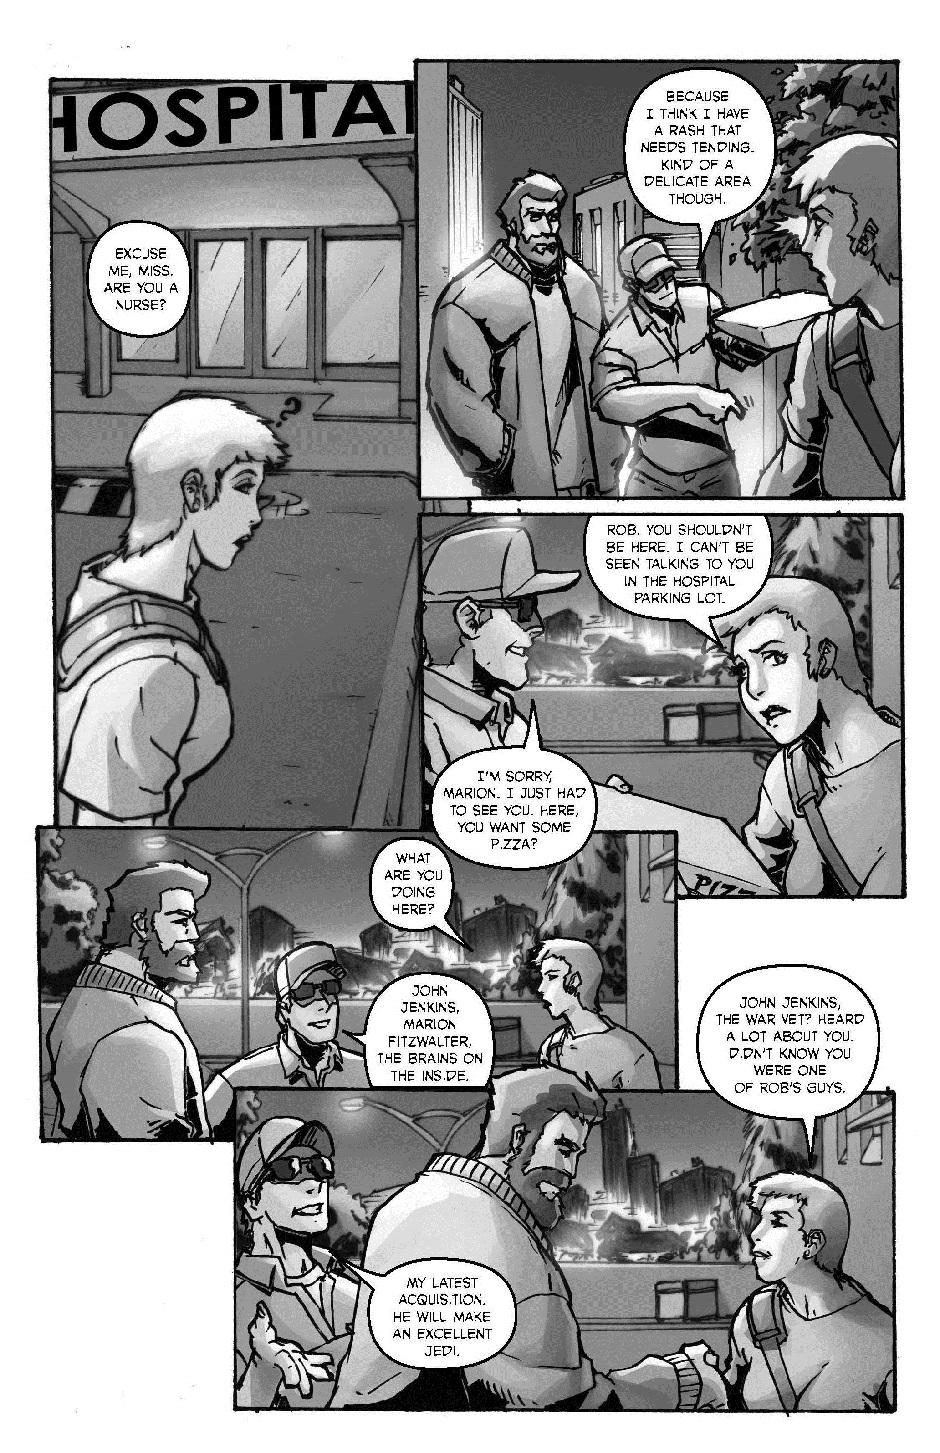 ROBIN HOOD: OUTLAW OF THE 21ST CENTURY PG. 12